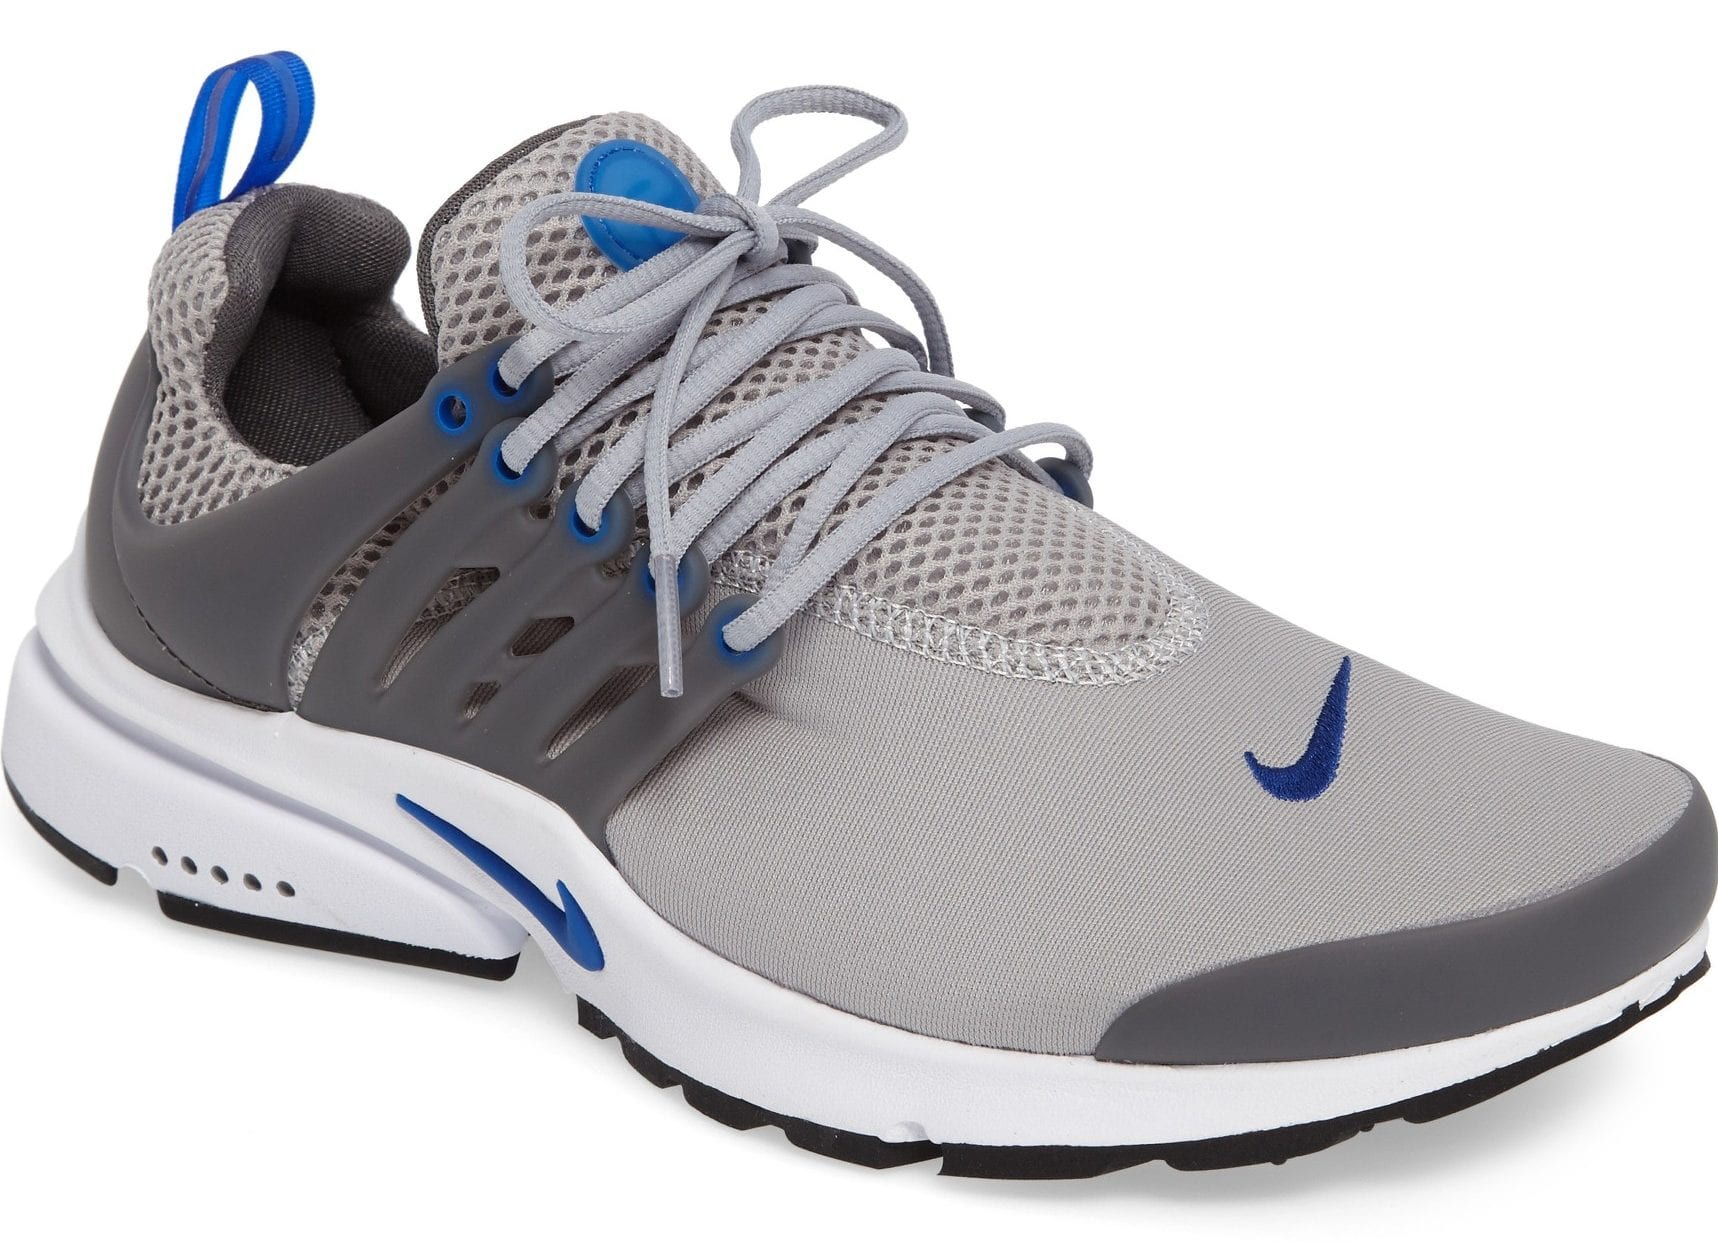 23 Best Mens Sneakers For Spring 2018 New Top Tennis Running Shoes